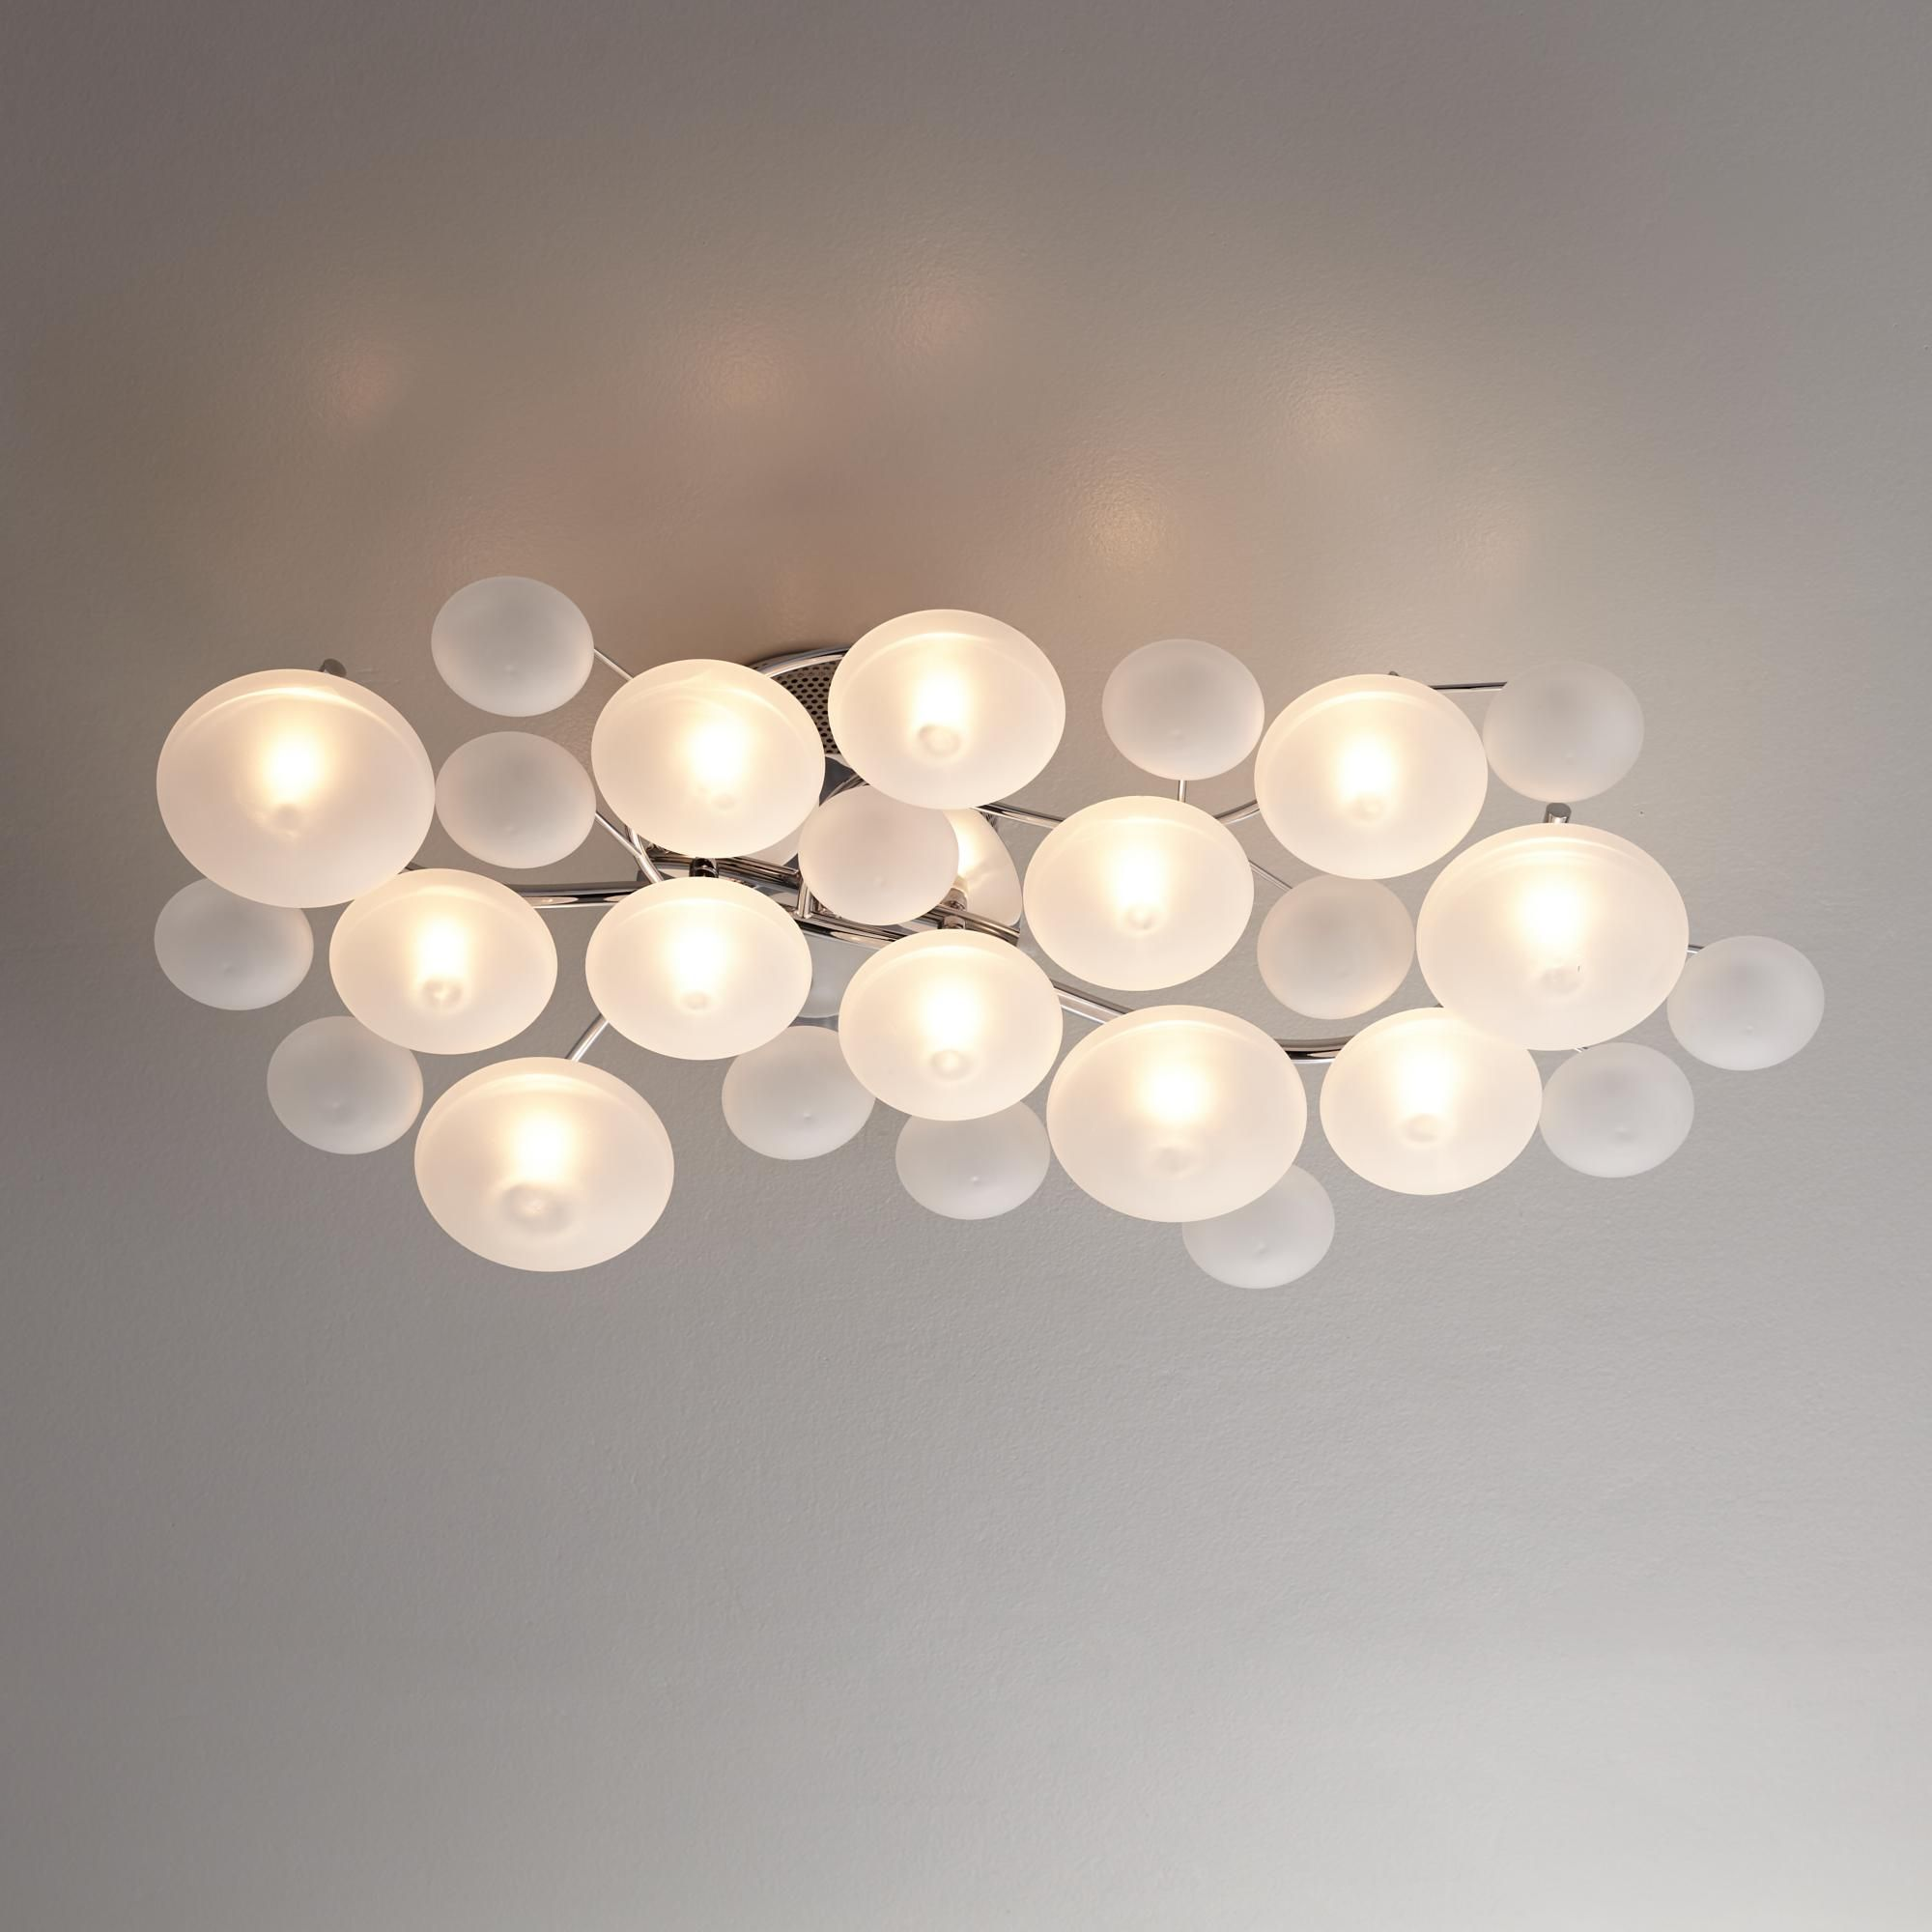 Possini euro lilypad 30 wide etched glass ceiling light for the possini euro lilypad etched 30 wide ceiling light fixture 20756 lamps plus aloadofball Image collections